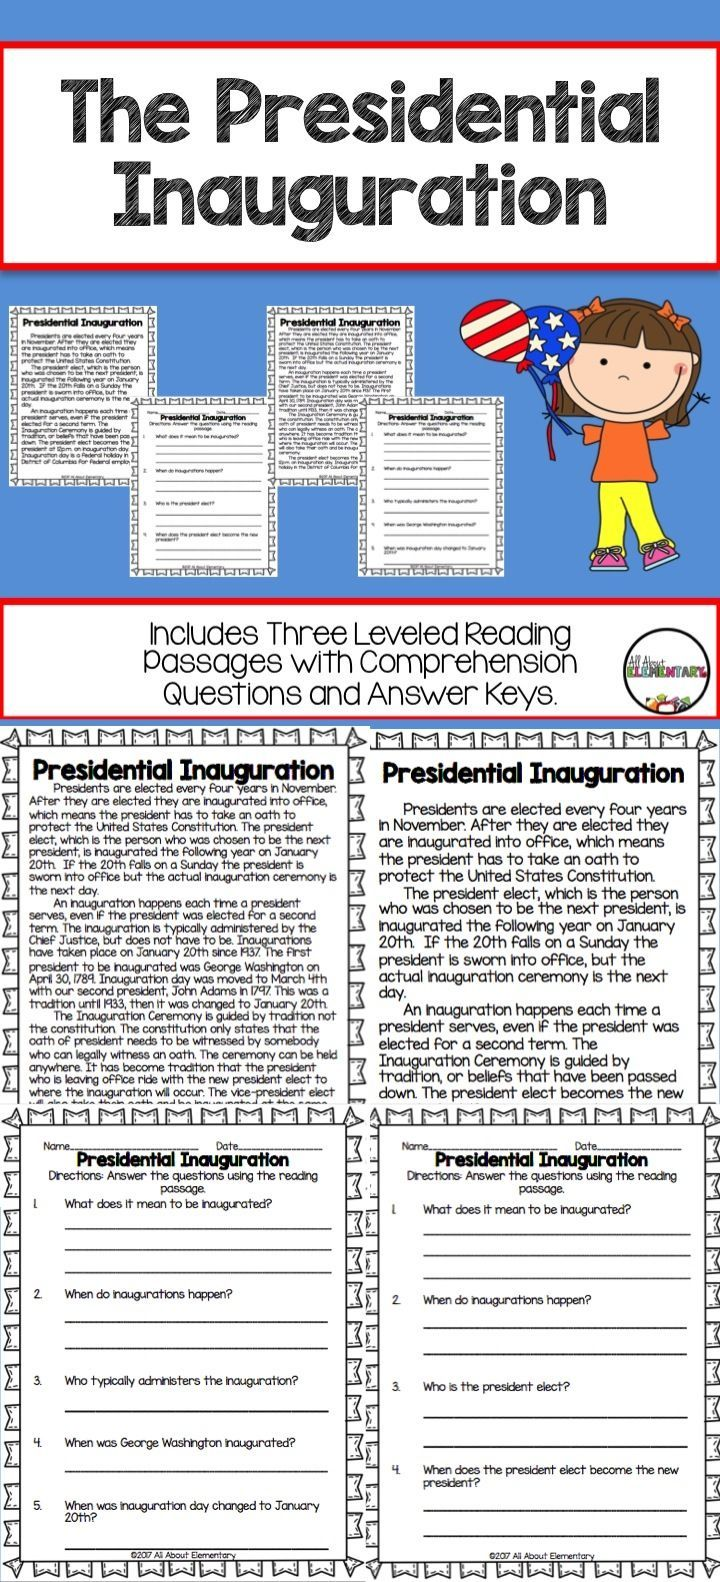 Presidential Inauguration Reading Passages And Comprehension Questions Reading Passages Comprehension Questions This Or That Questions [ 1582 x 720 Pixel ]